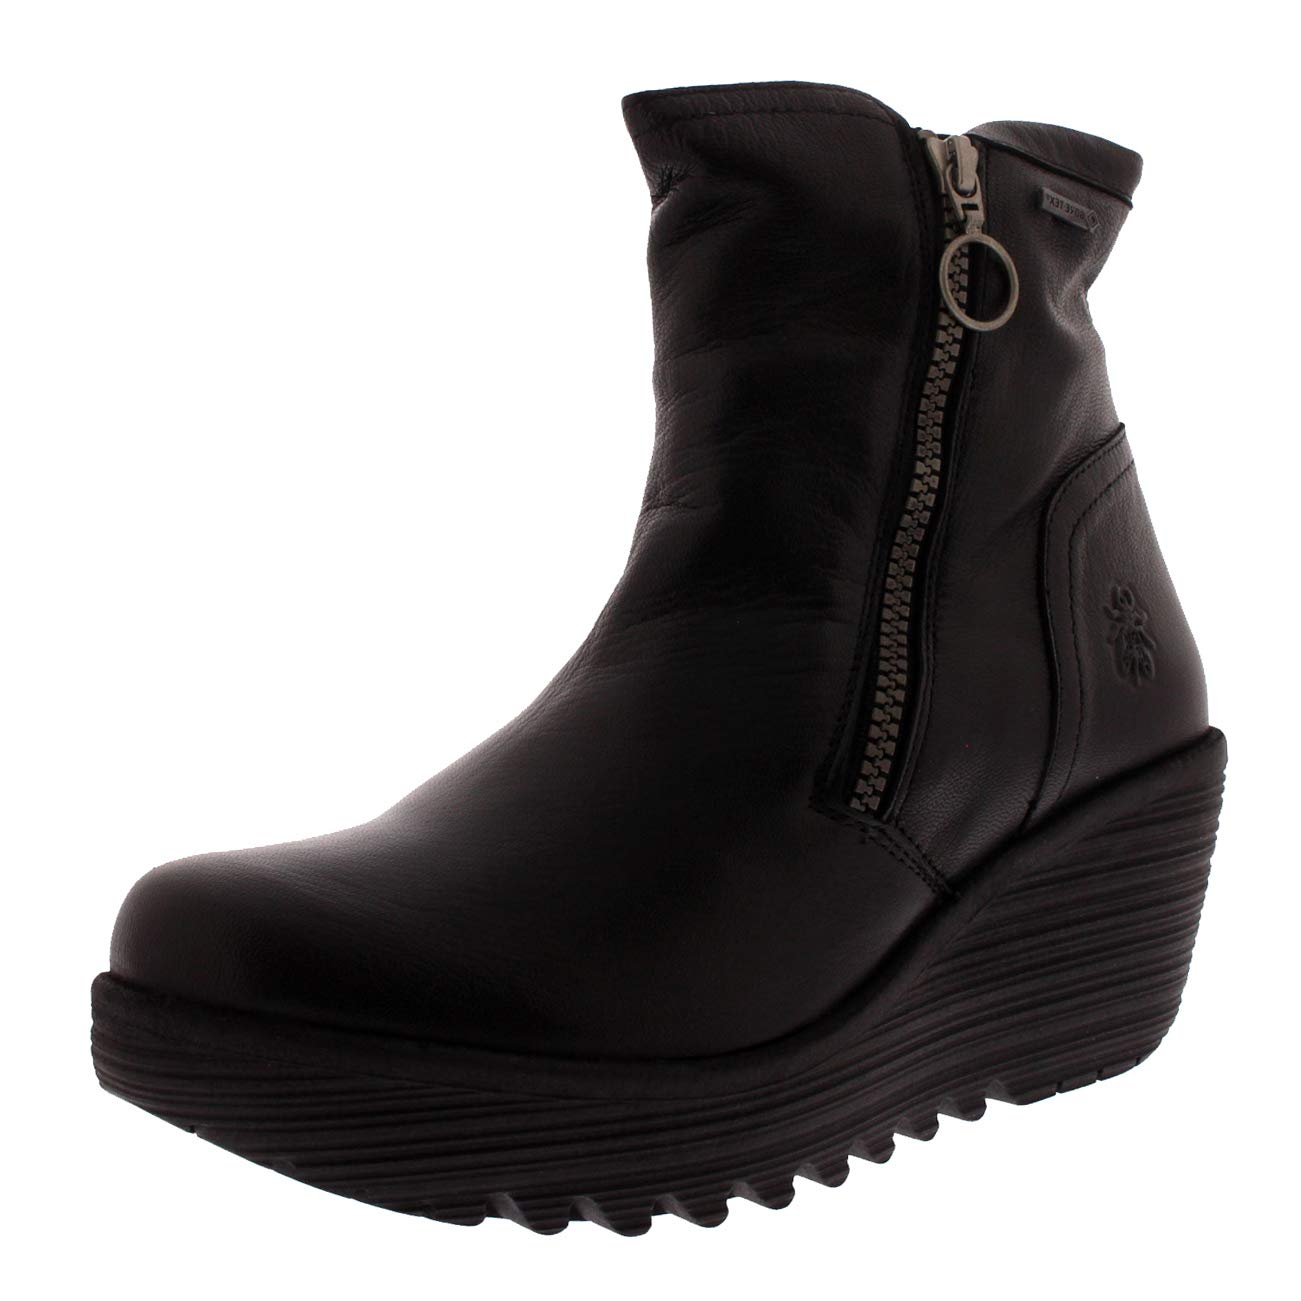 f5b56ab4aebaf Amazon.com | FLY London Women's Yolk Mousse Leather Zip Wedge Boot  Black-Black-4 | Shoes